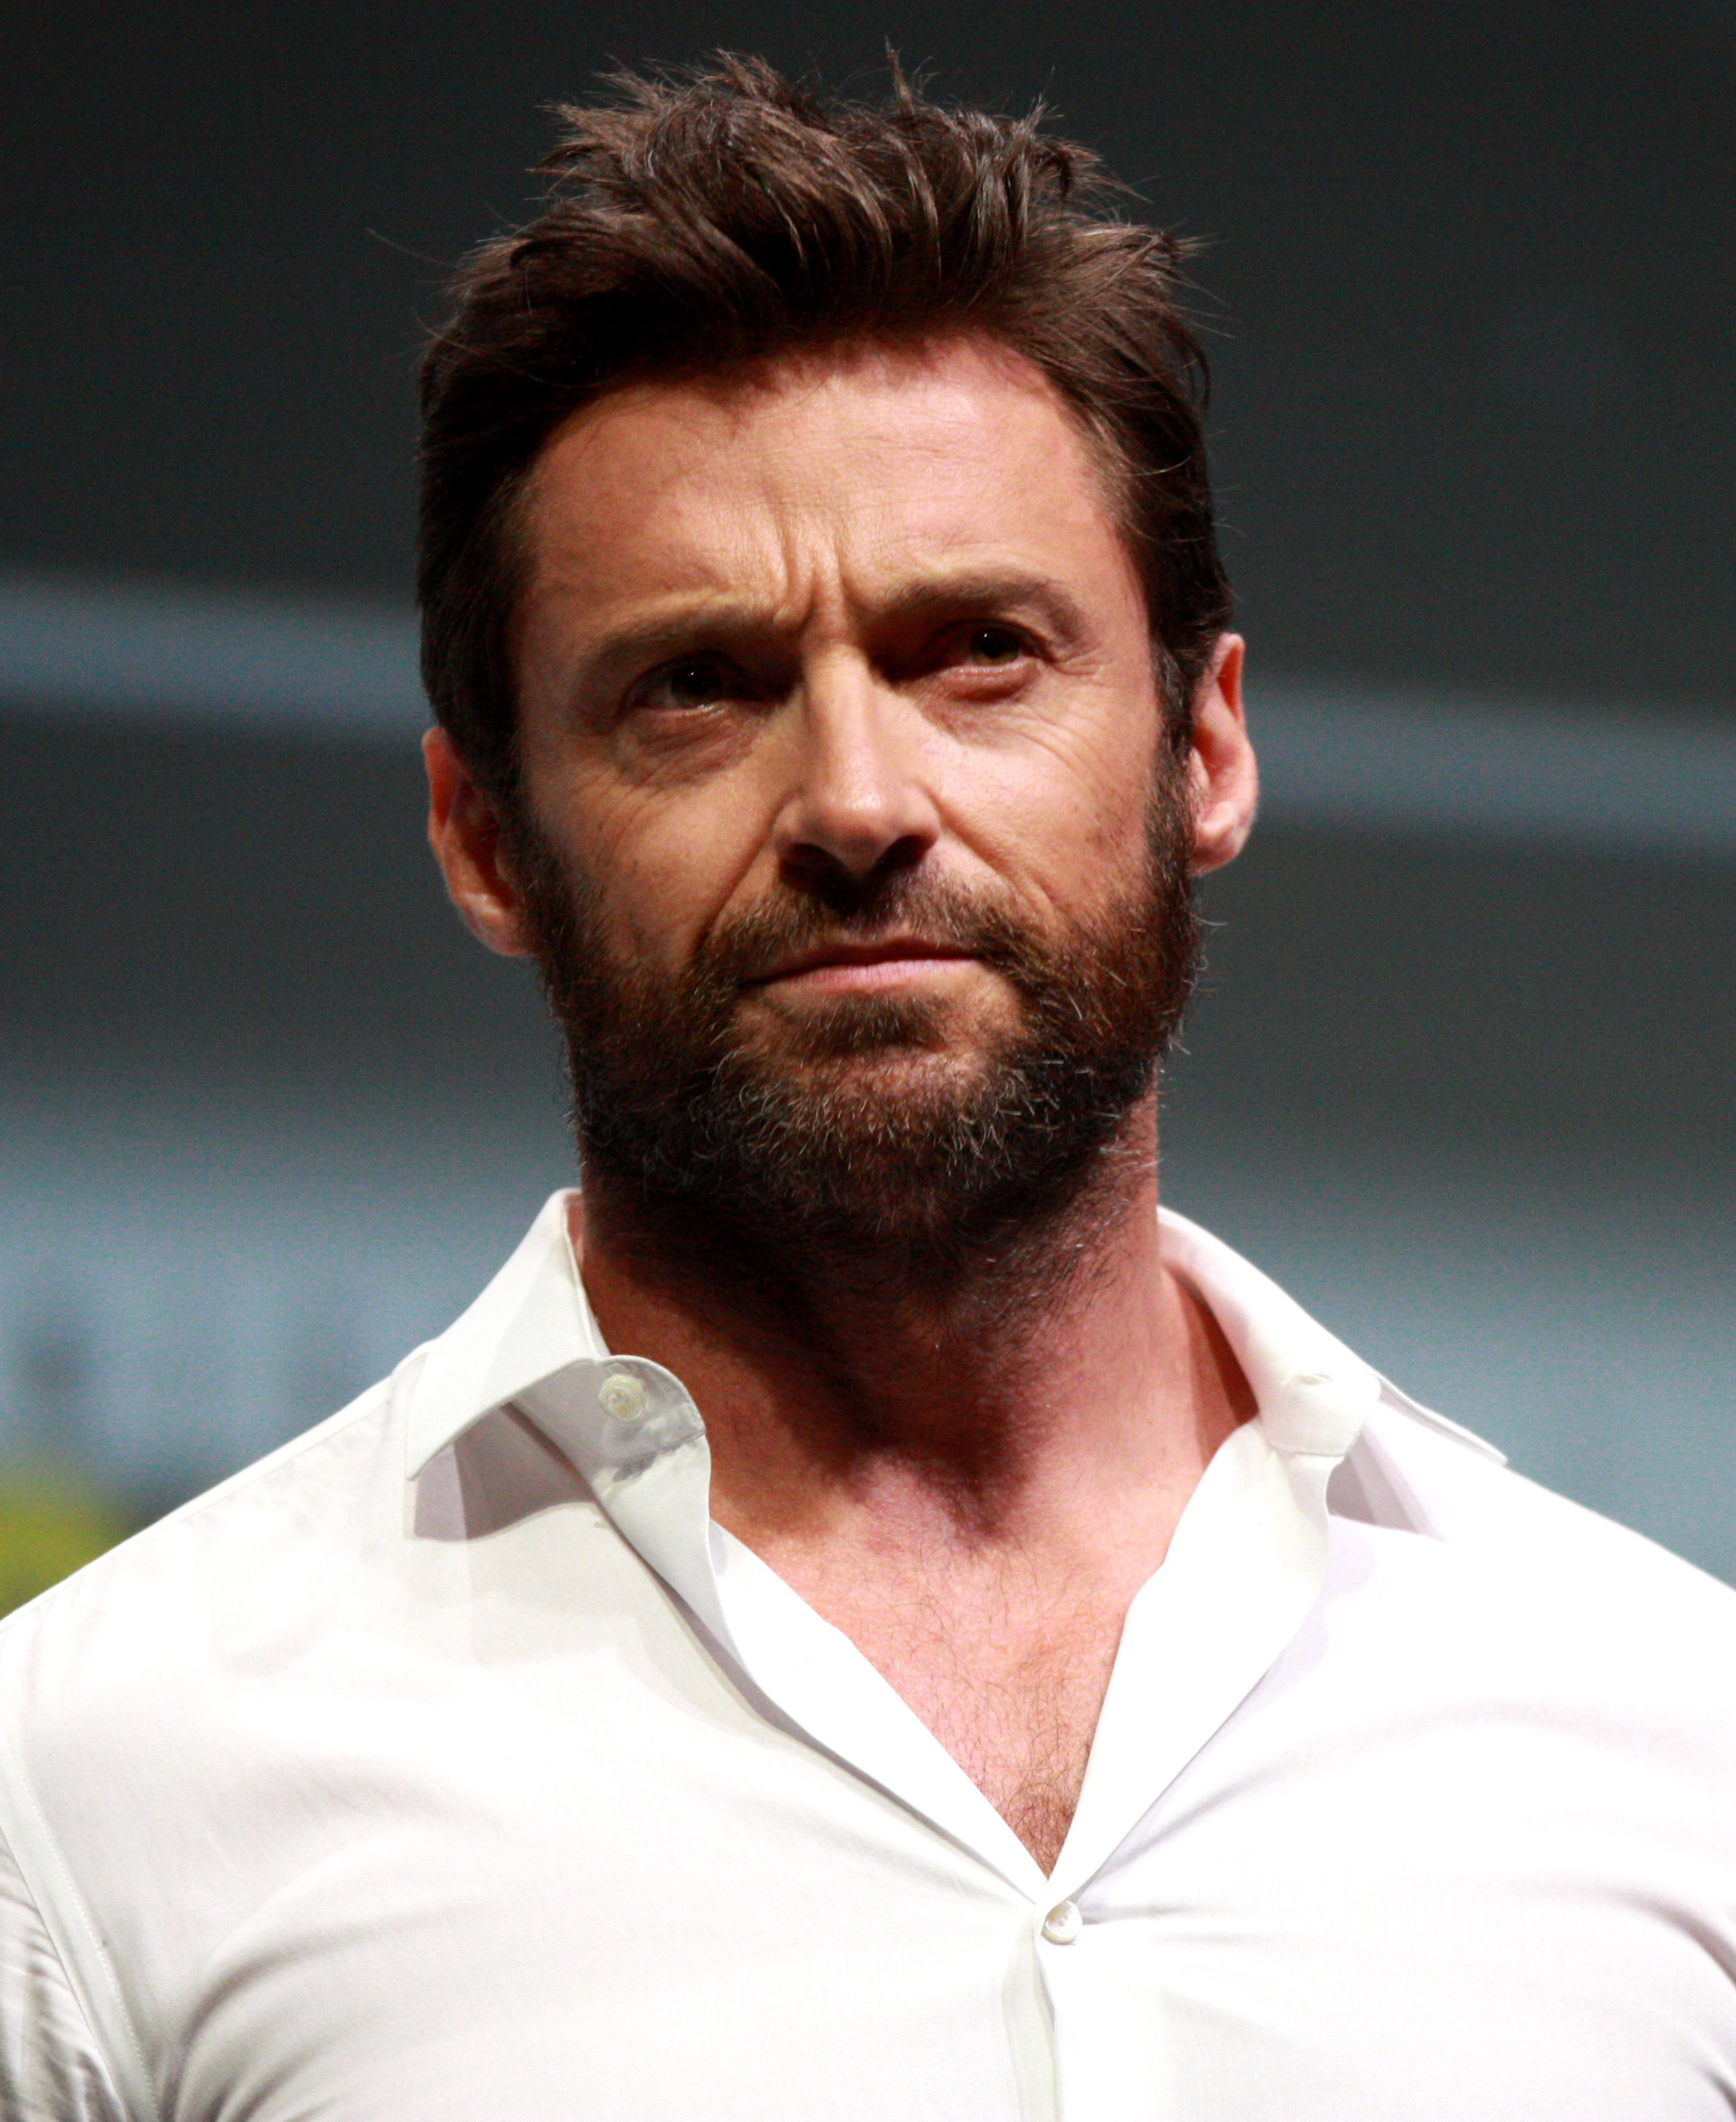 hollywood actors. hollywood movies list. hugh jackman movies list in